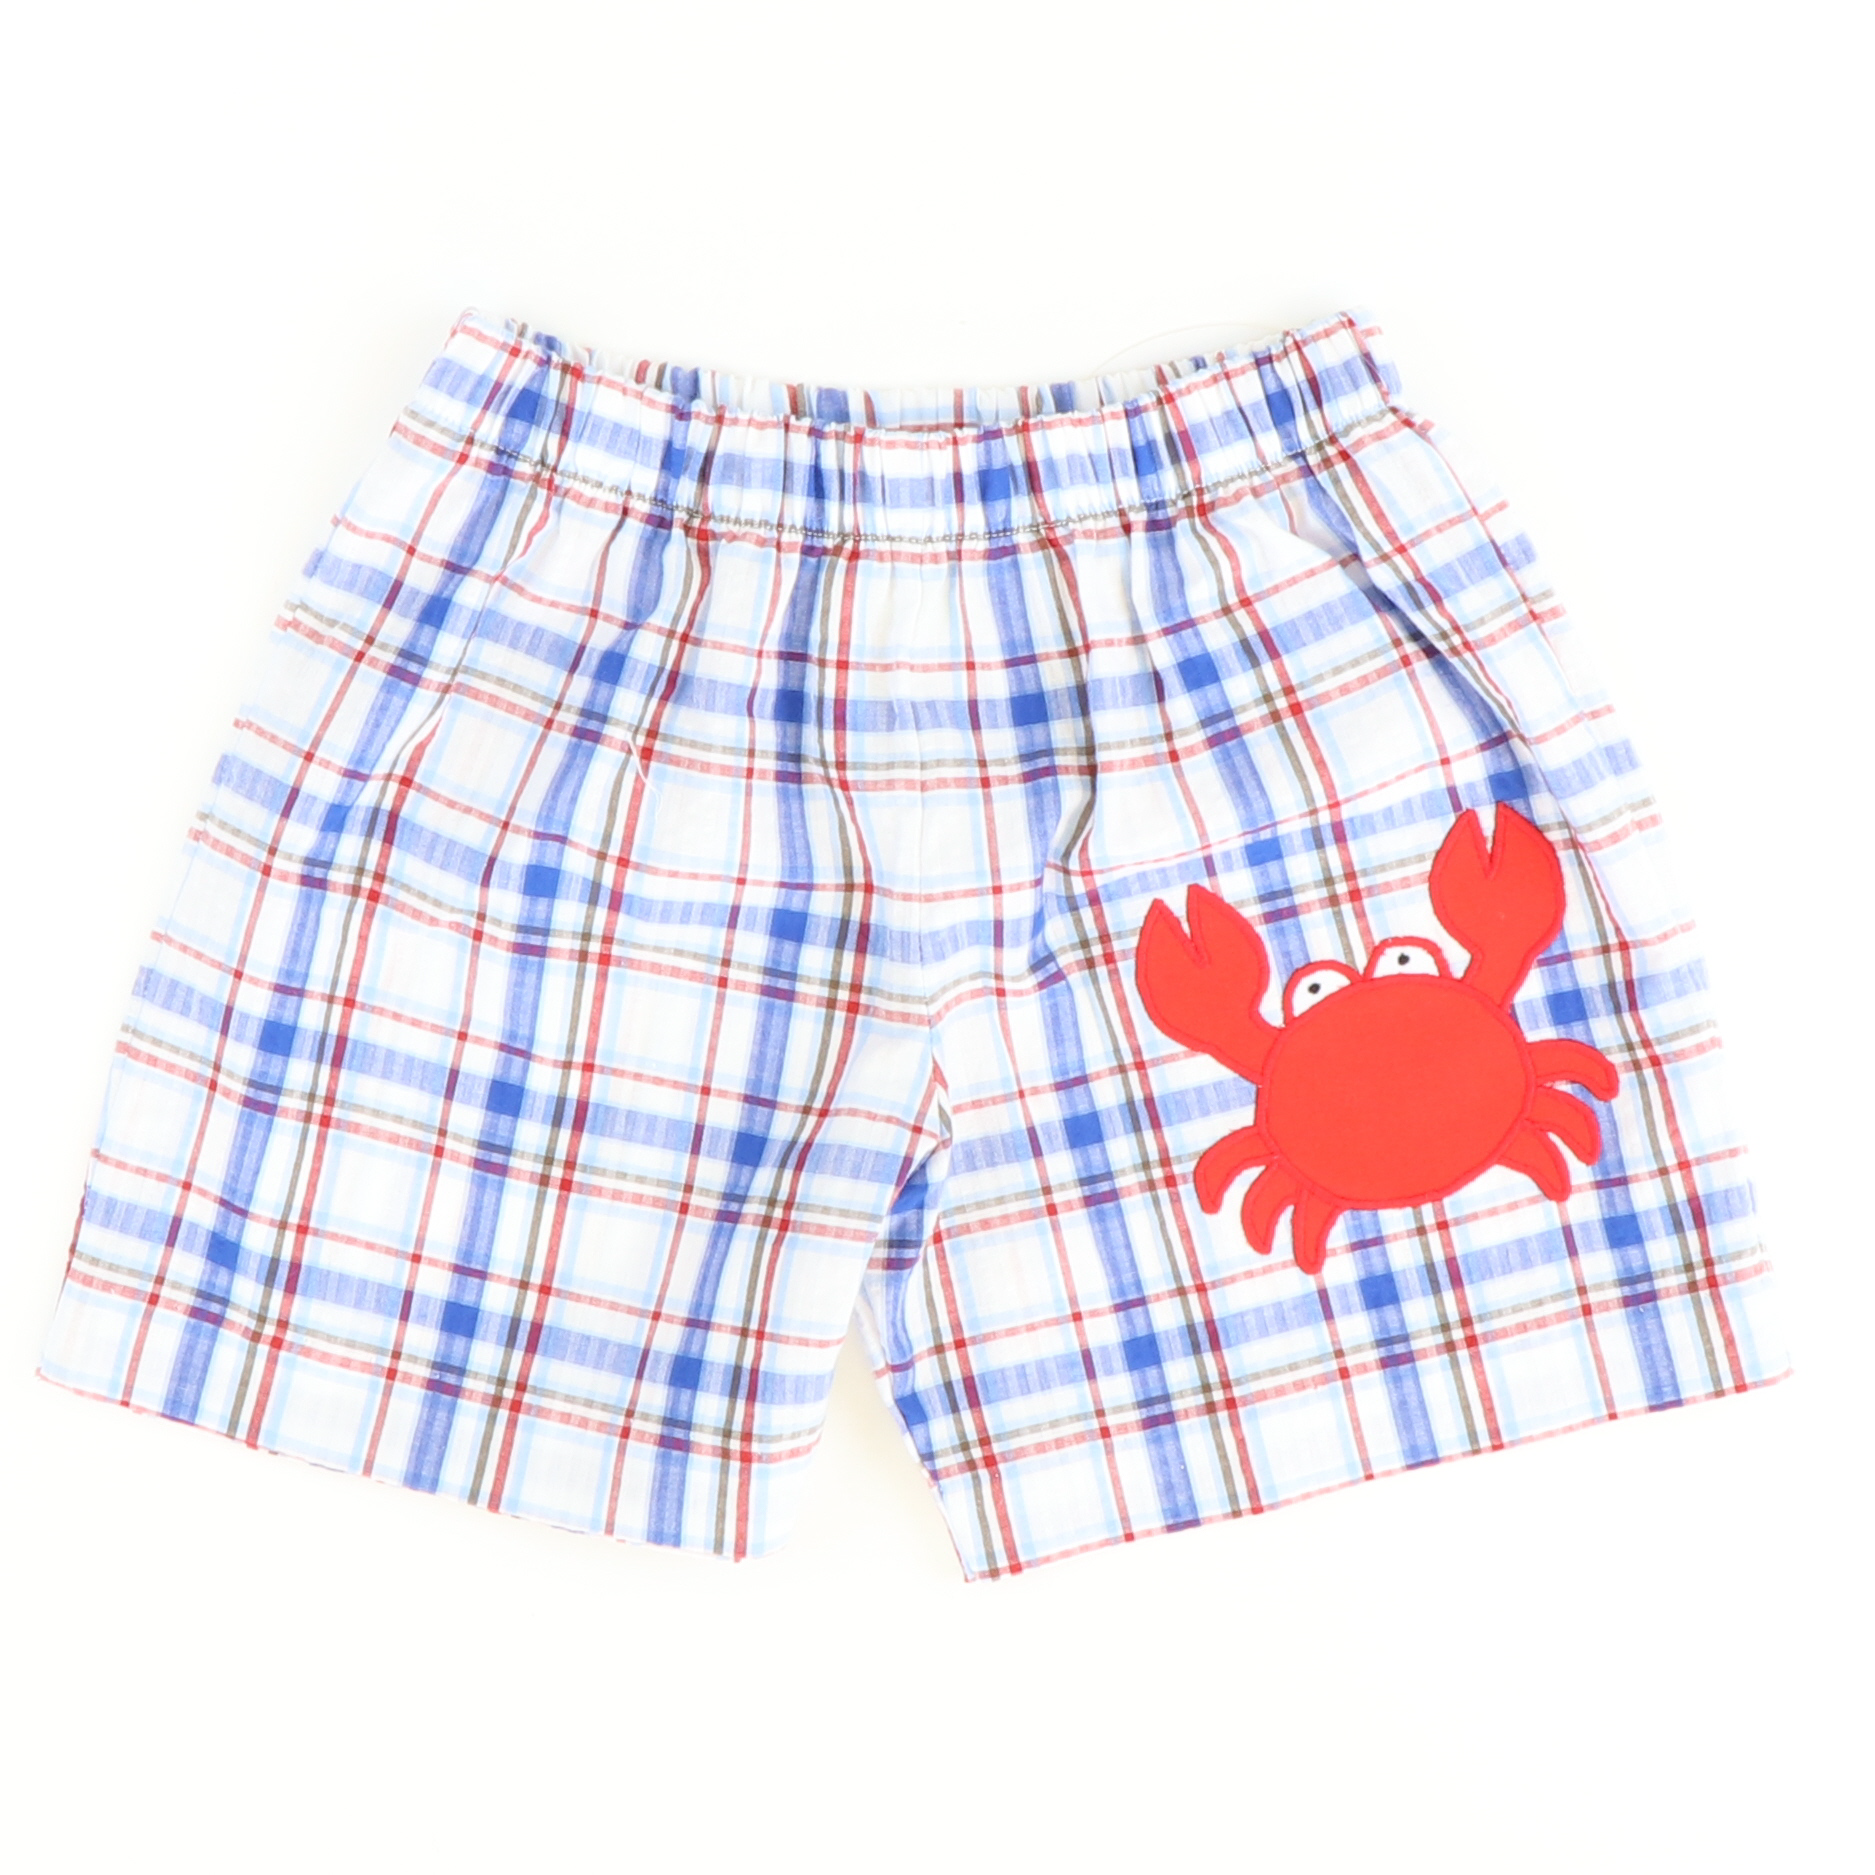 Appliquéd Crab Shorts - Blue, Red, & White Plaid - Stellybelly